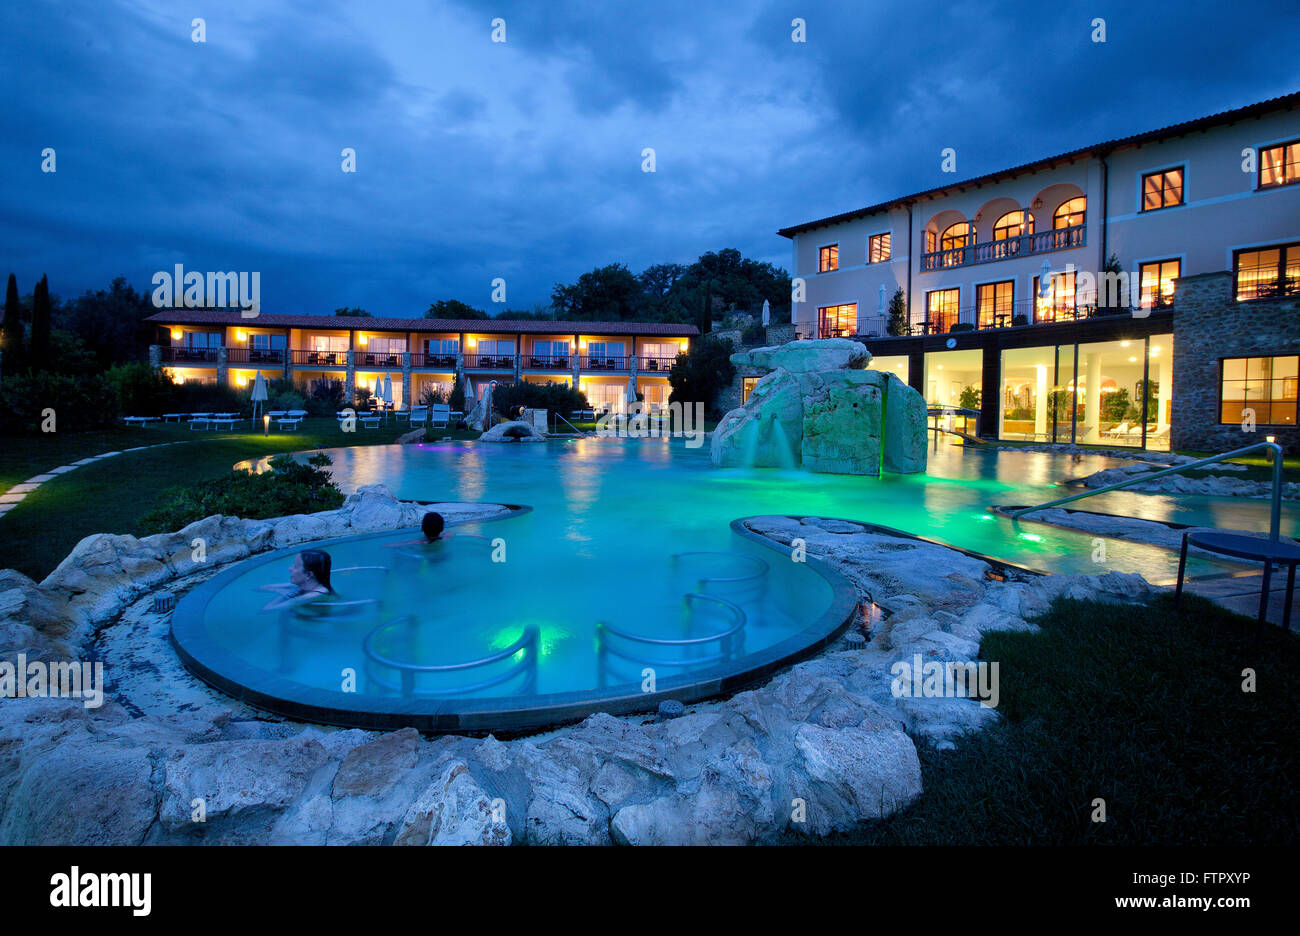 Hotel Adler Thermae Spa  Relax ResortBagno VignoniToscana Stock Photo 101307690  Alamy